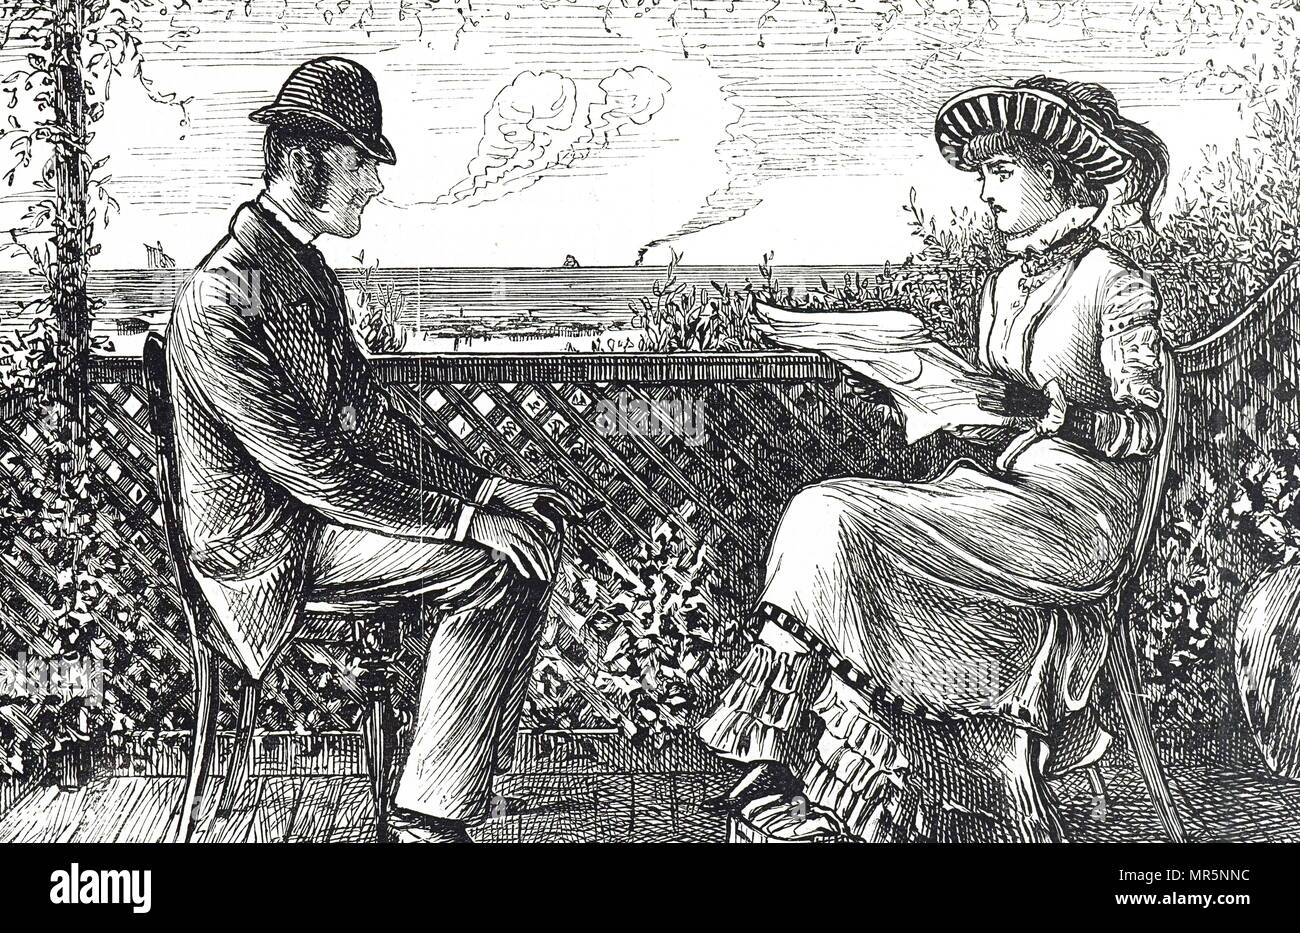 Cartoon depicting a husband and wife - the husband is responsible for his wife's debts unless he published a revocation of his responsibilities. Illustrated by George du Maurier (1834-1896) a Franco-British cartoonist and author. Dated 19th century - Stock Image